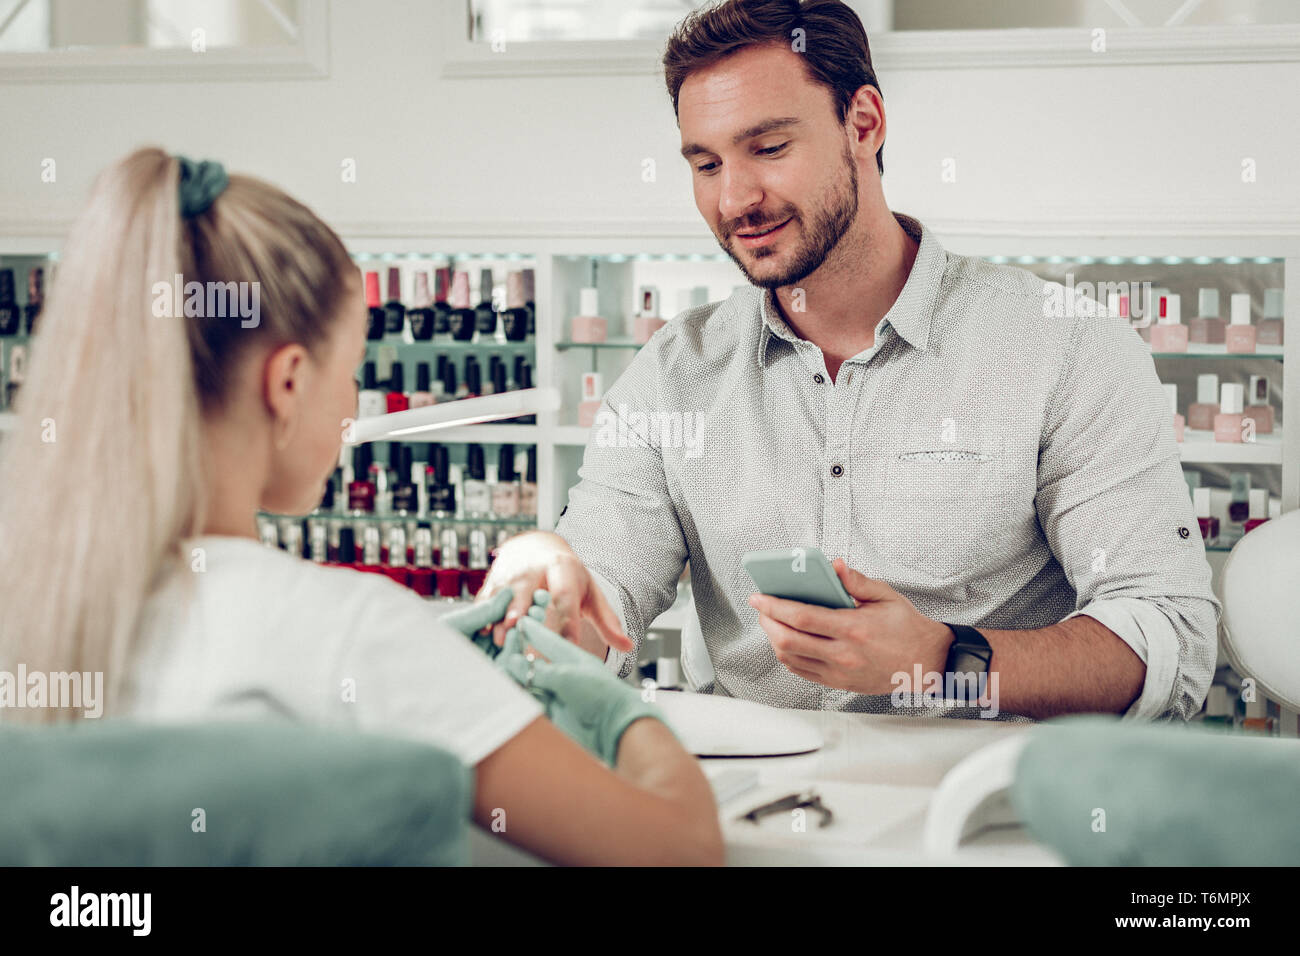 Handsome bearded dark-haired man treating his nails in special salon - Stock Image